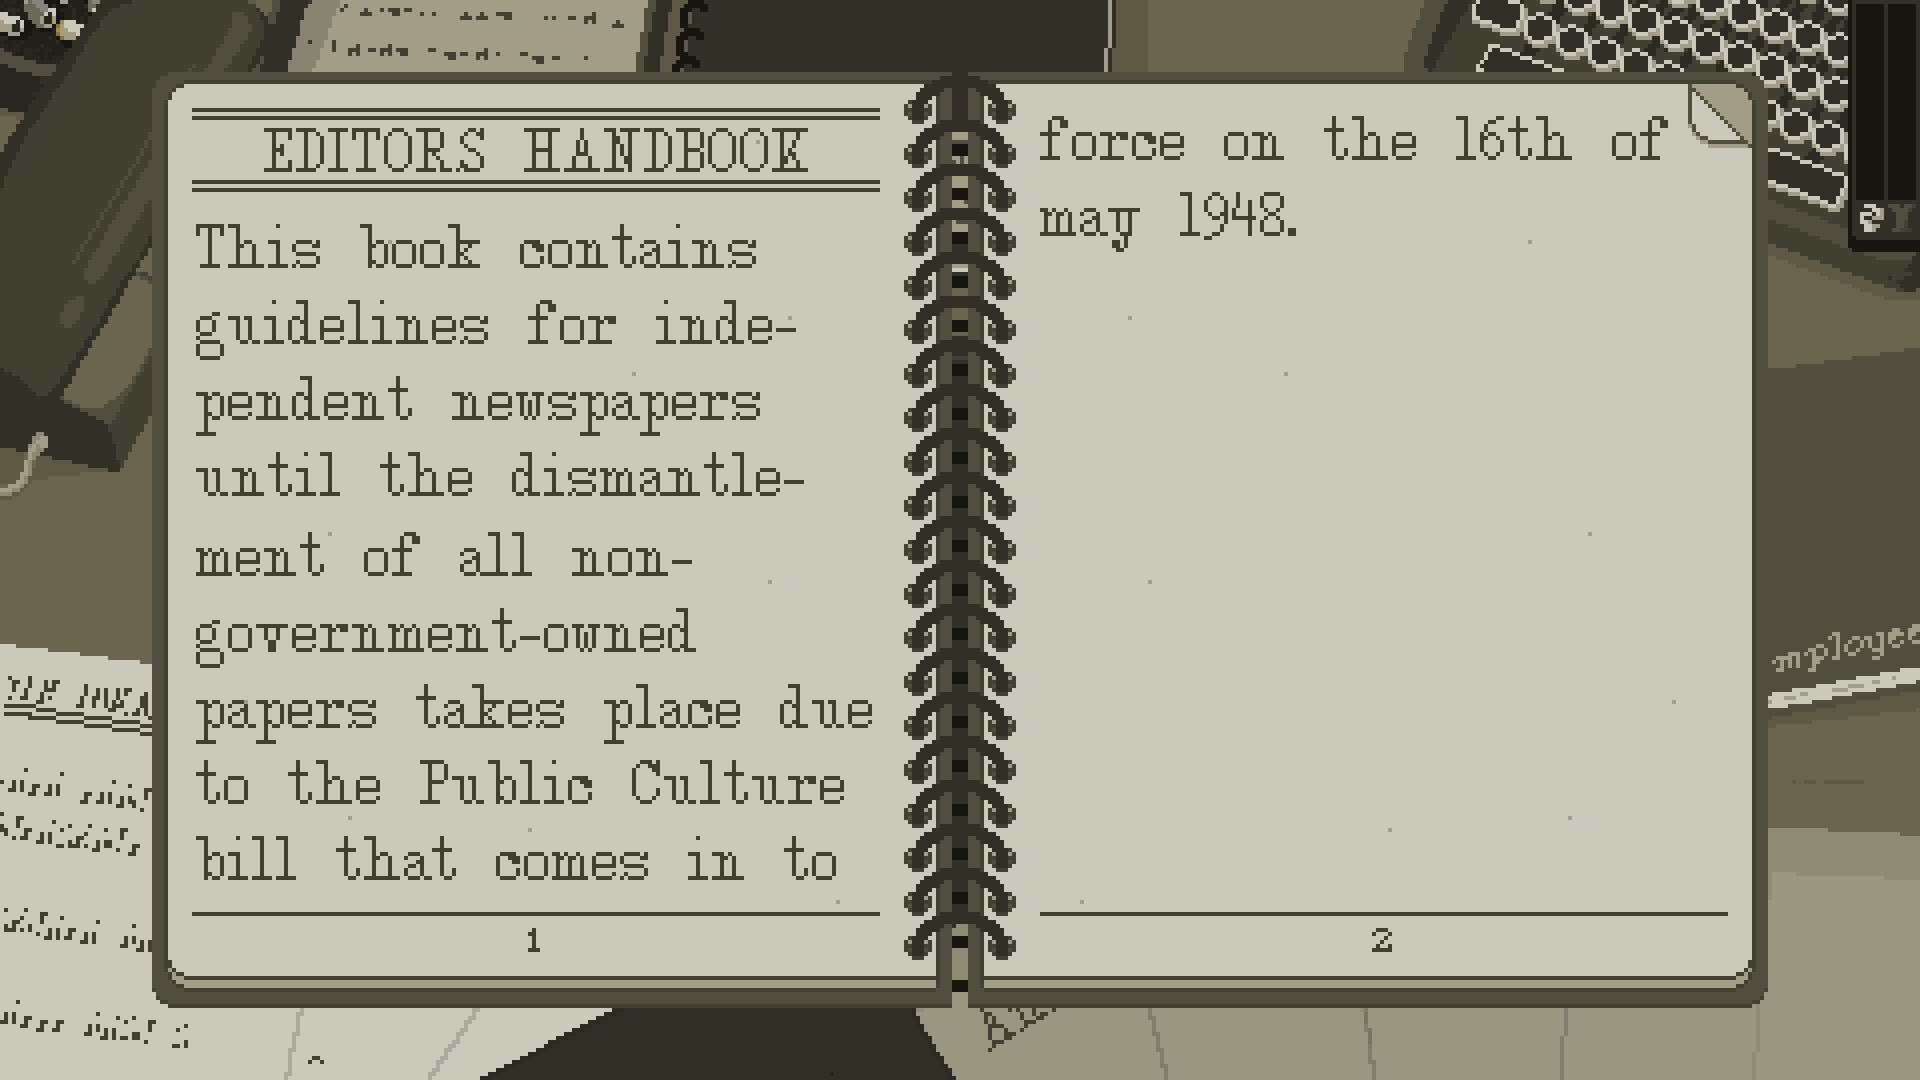 Newspaper censorship sim The Westport Independent is coming to iOS and Android next week